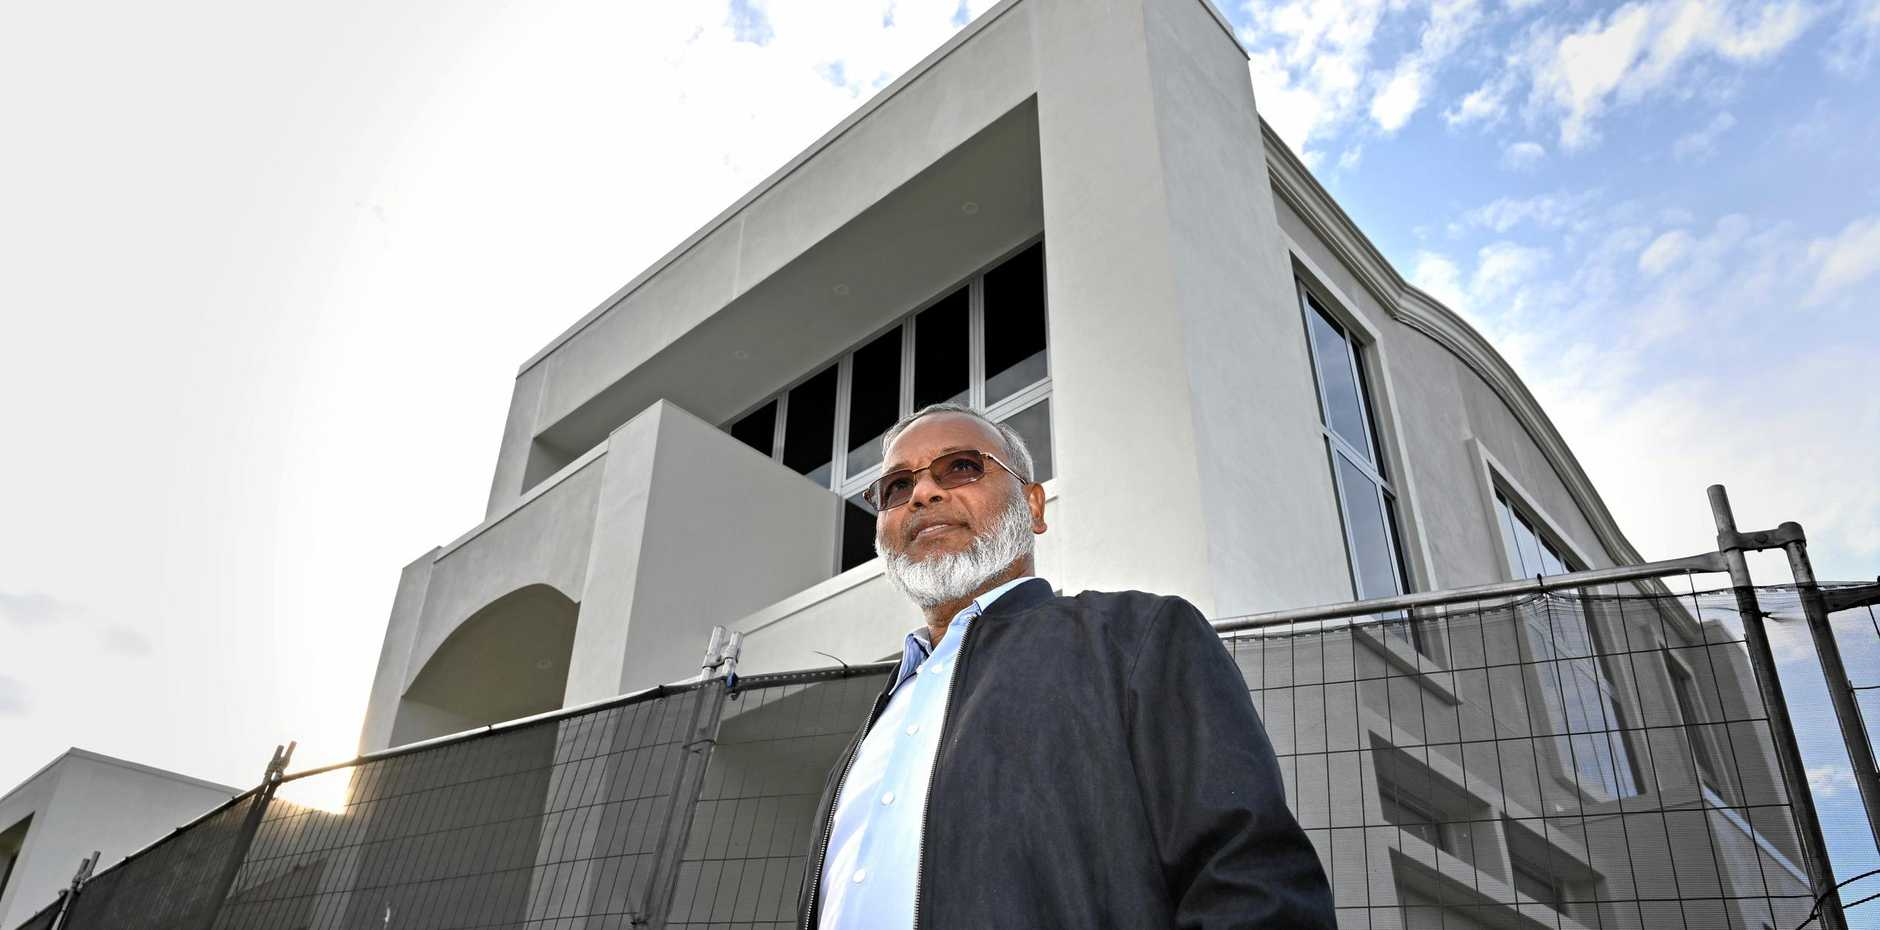 NEW LOOK: Professor Shahjahan Khan says he's pleased to see the completion of the exterior part of the new Garden City Mosque, something he says is a community effort.